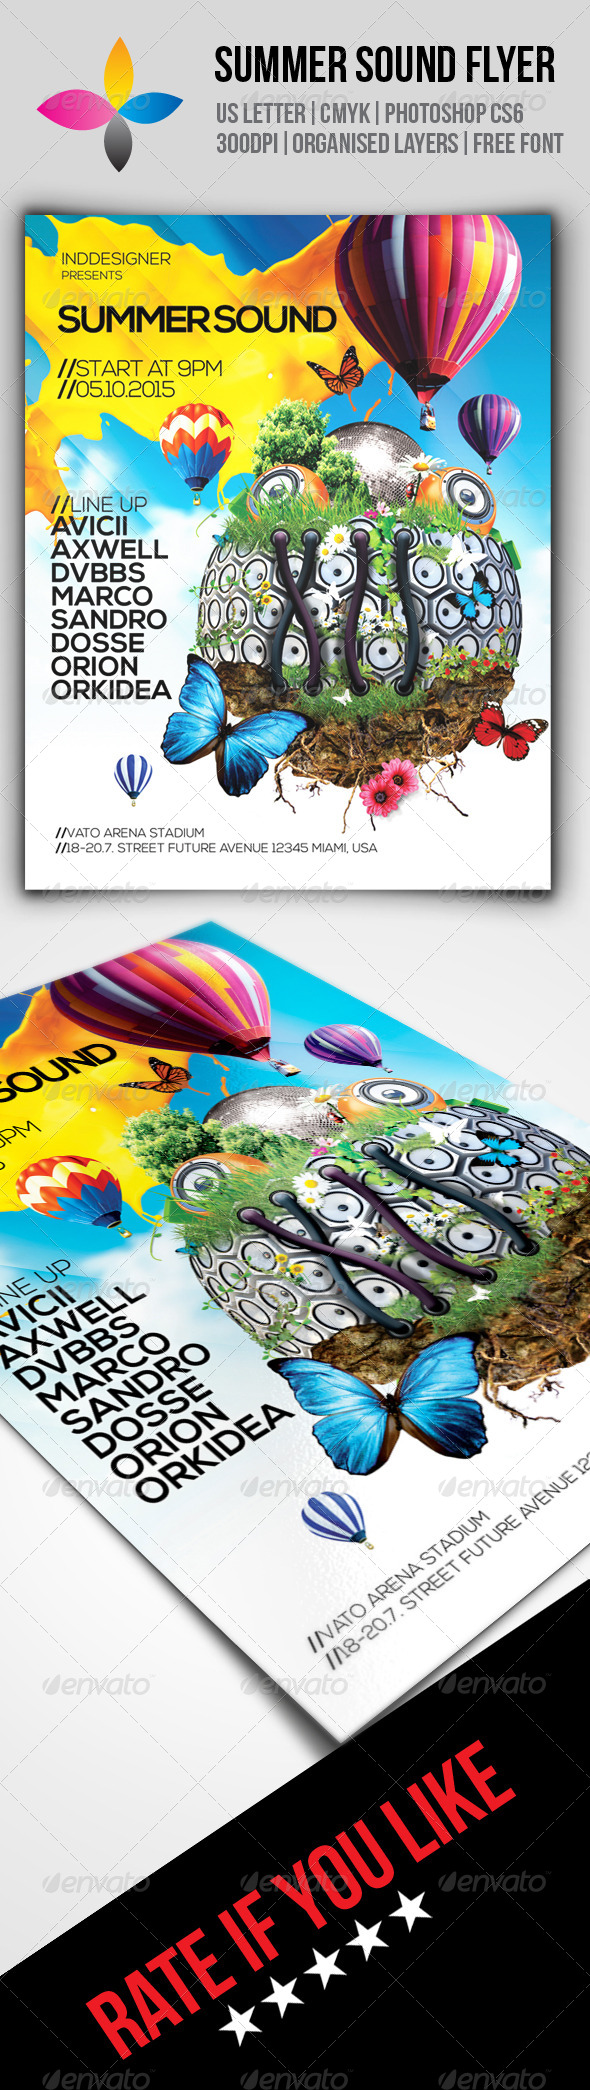 GraphicRiver Summer Sound Flyer 8590625